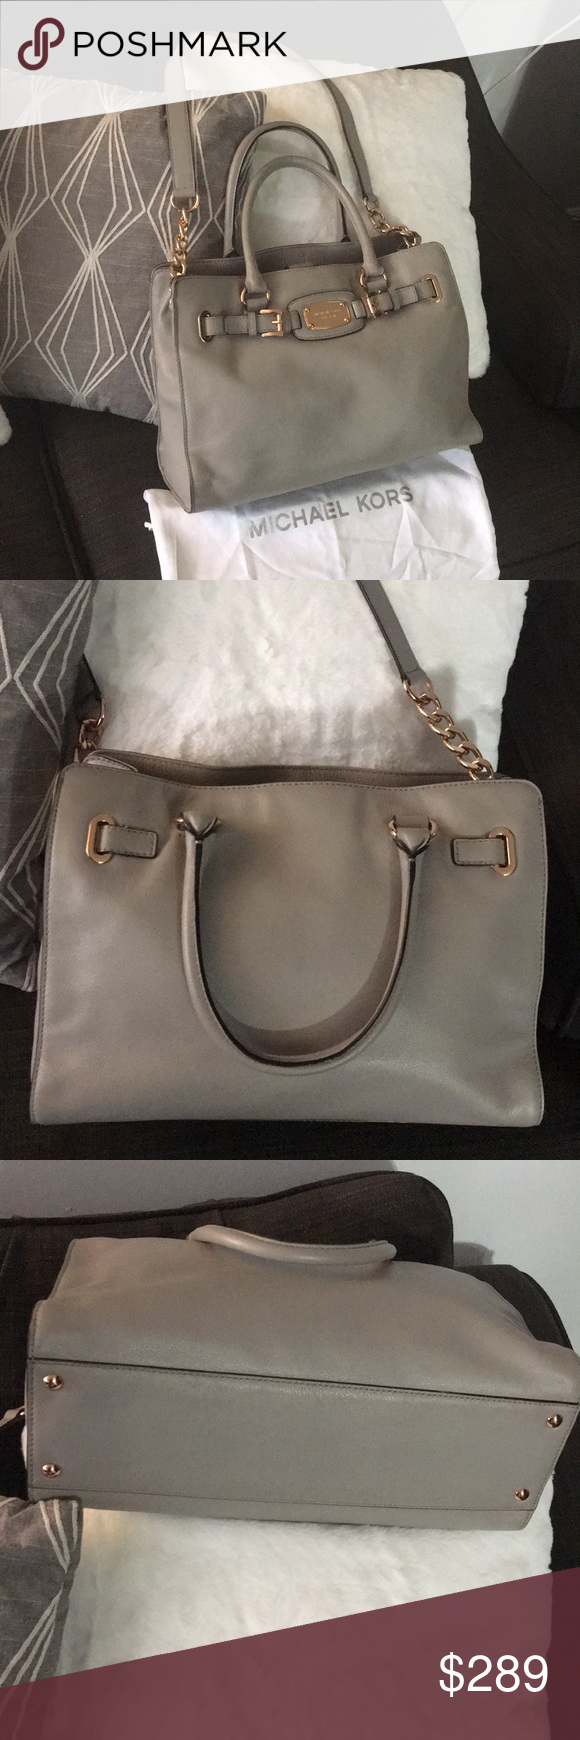 380a7769e8 RaRe ROSEGOLD Gray Michael Kors Hamilton bag Nearly Perfect Pre-Loved  condition Used 2